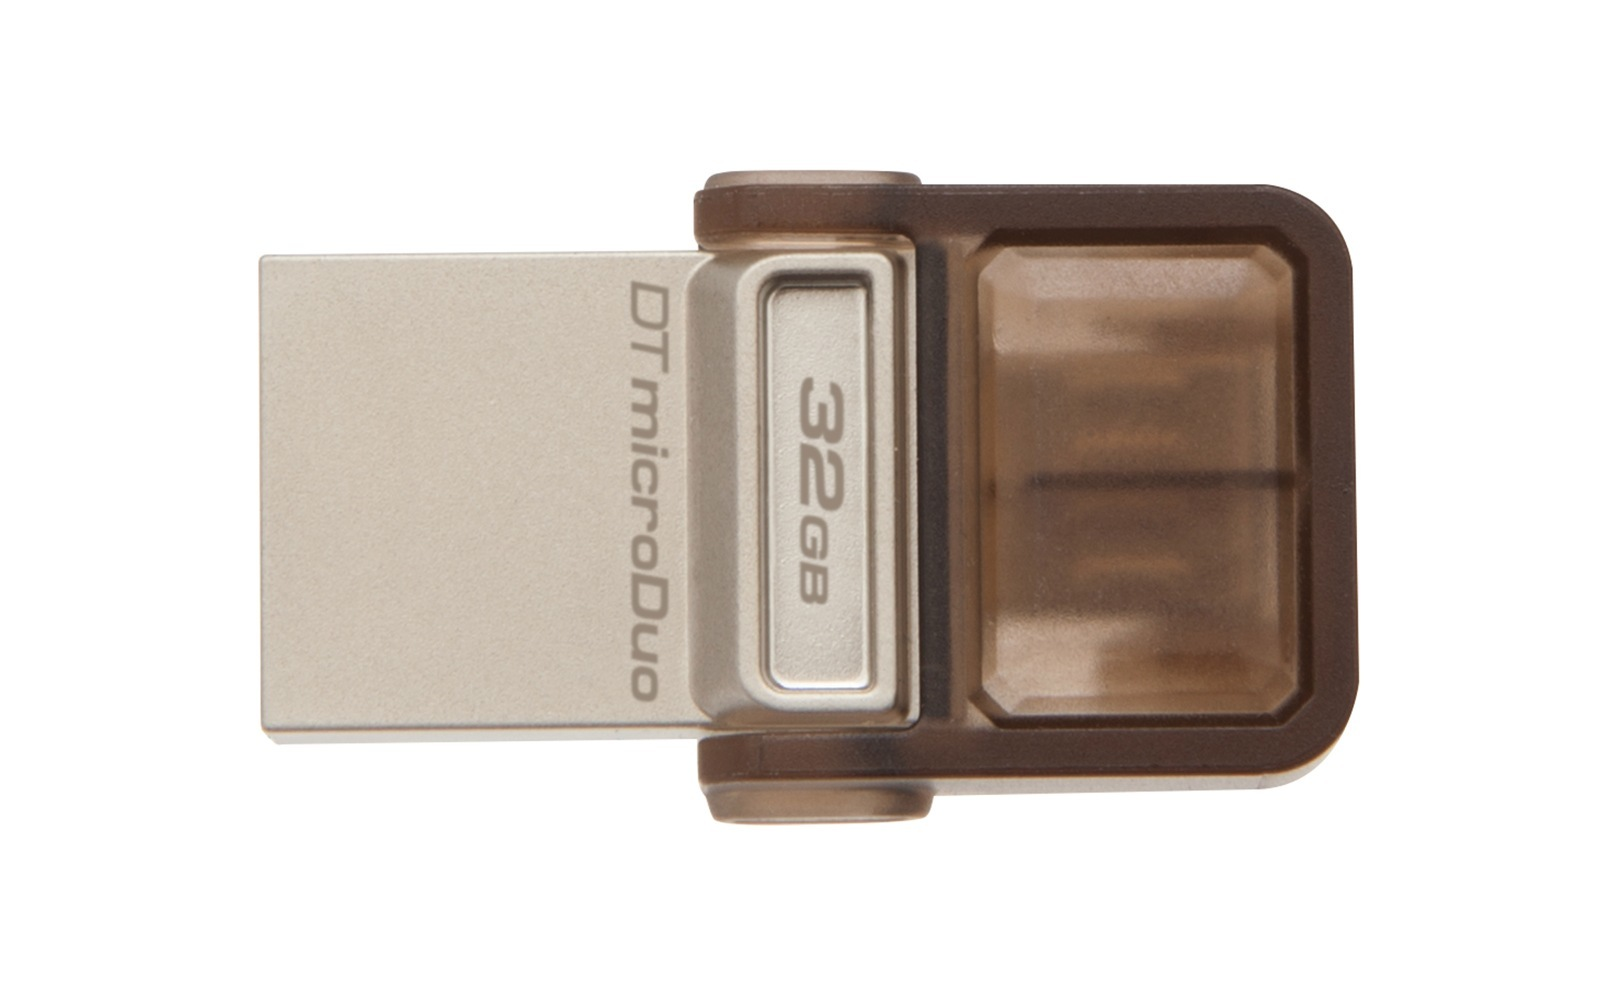 Kingston microDuo USB